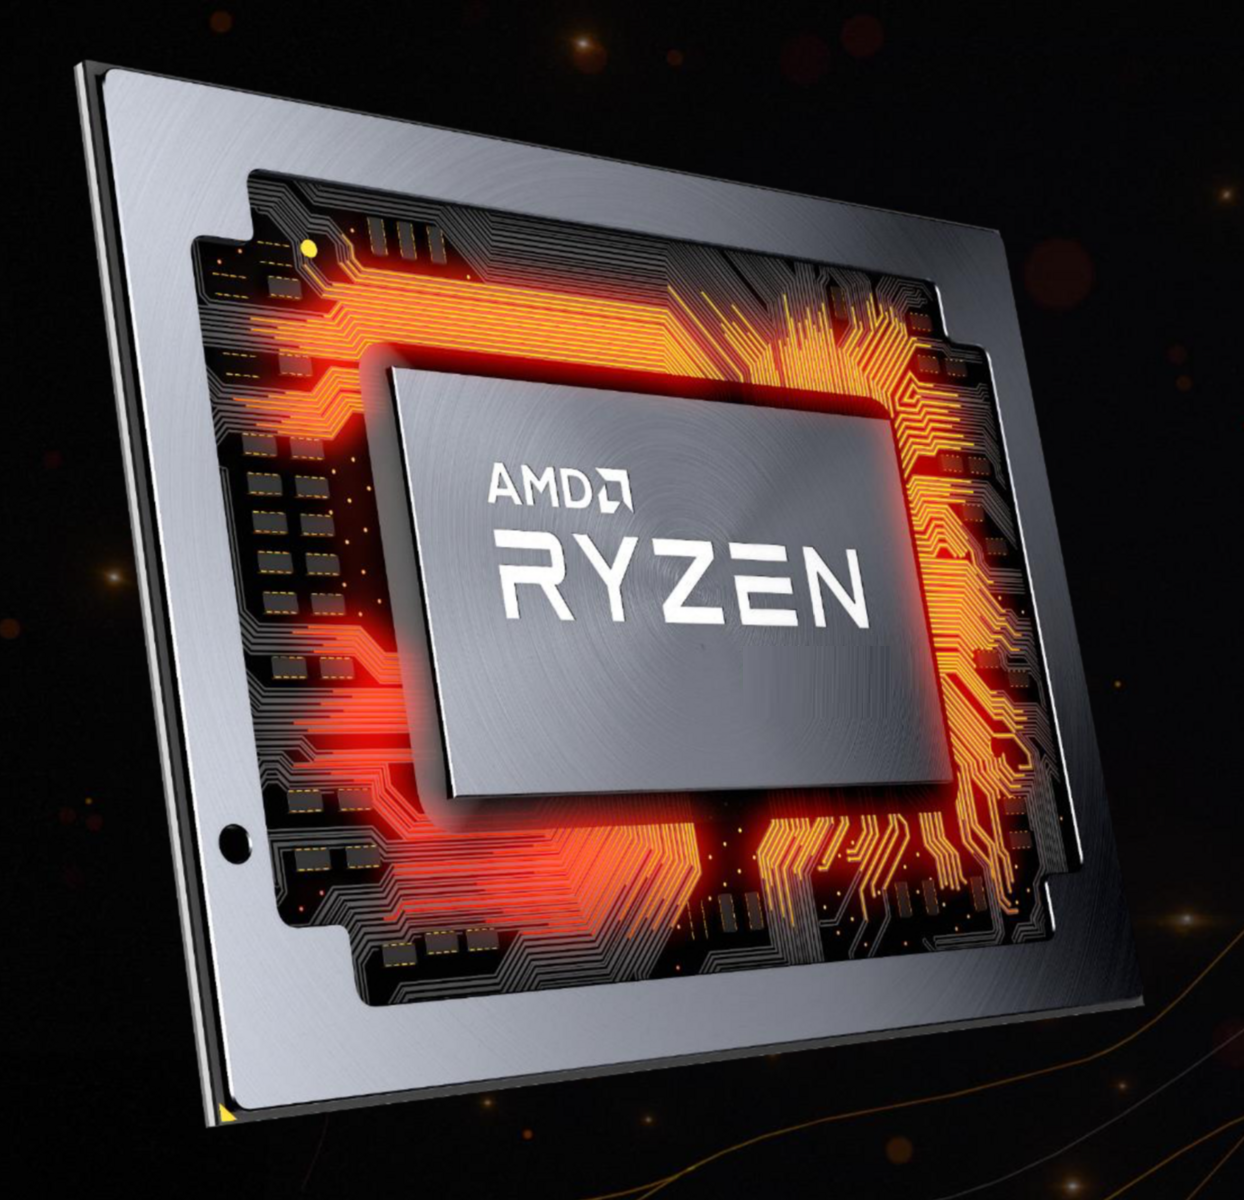 Amd Ryzen 7 4700g Renoir 8 Core Flagship Apu Overclocked To 4 55 Ghz Across All Cores Benchmarked Faster Than Ryzen 7 3800x Core I7 10700k